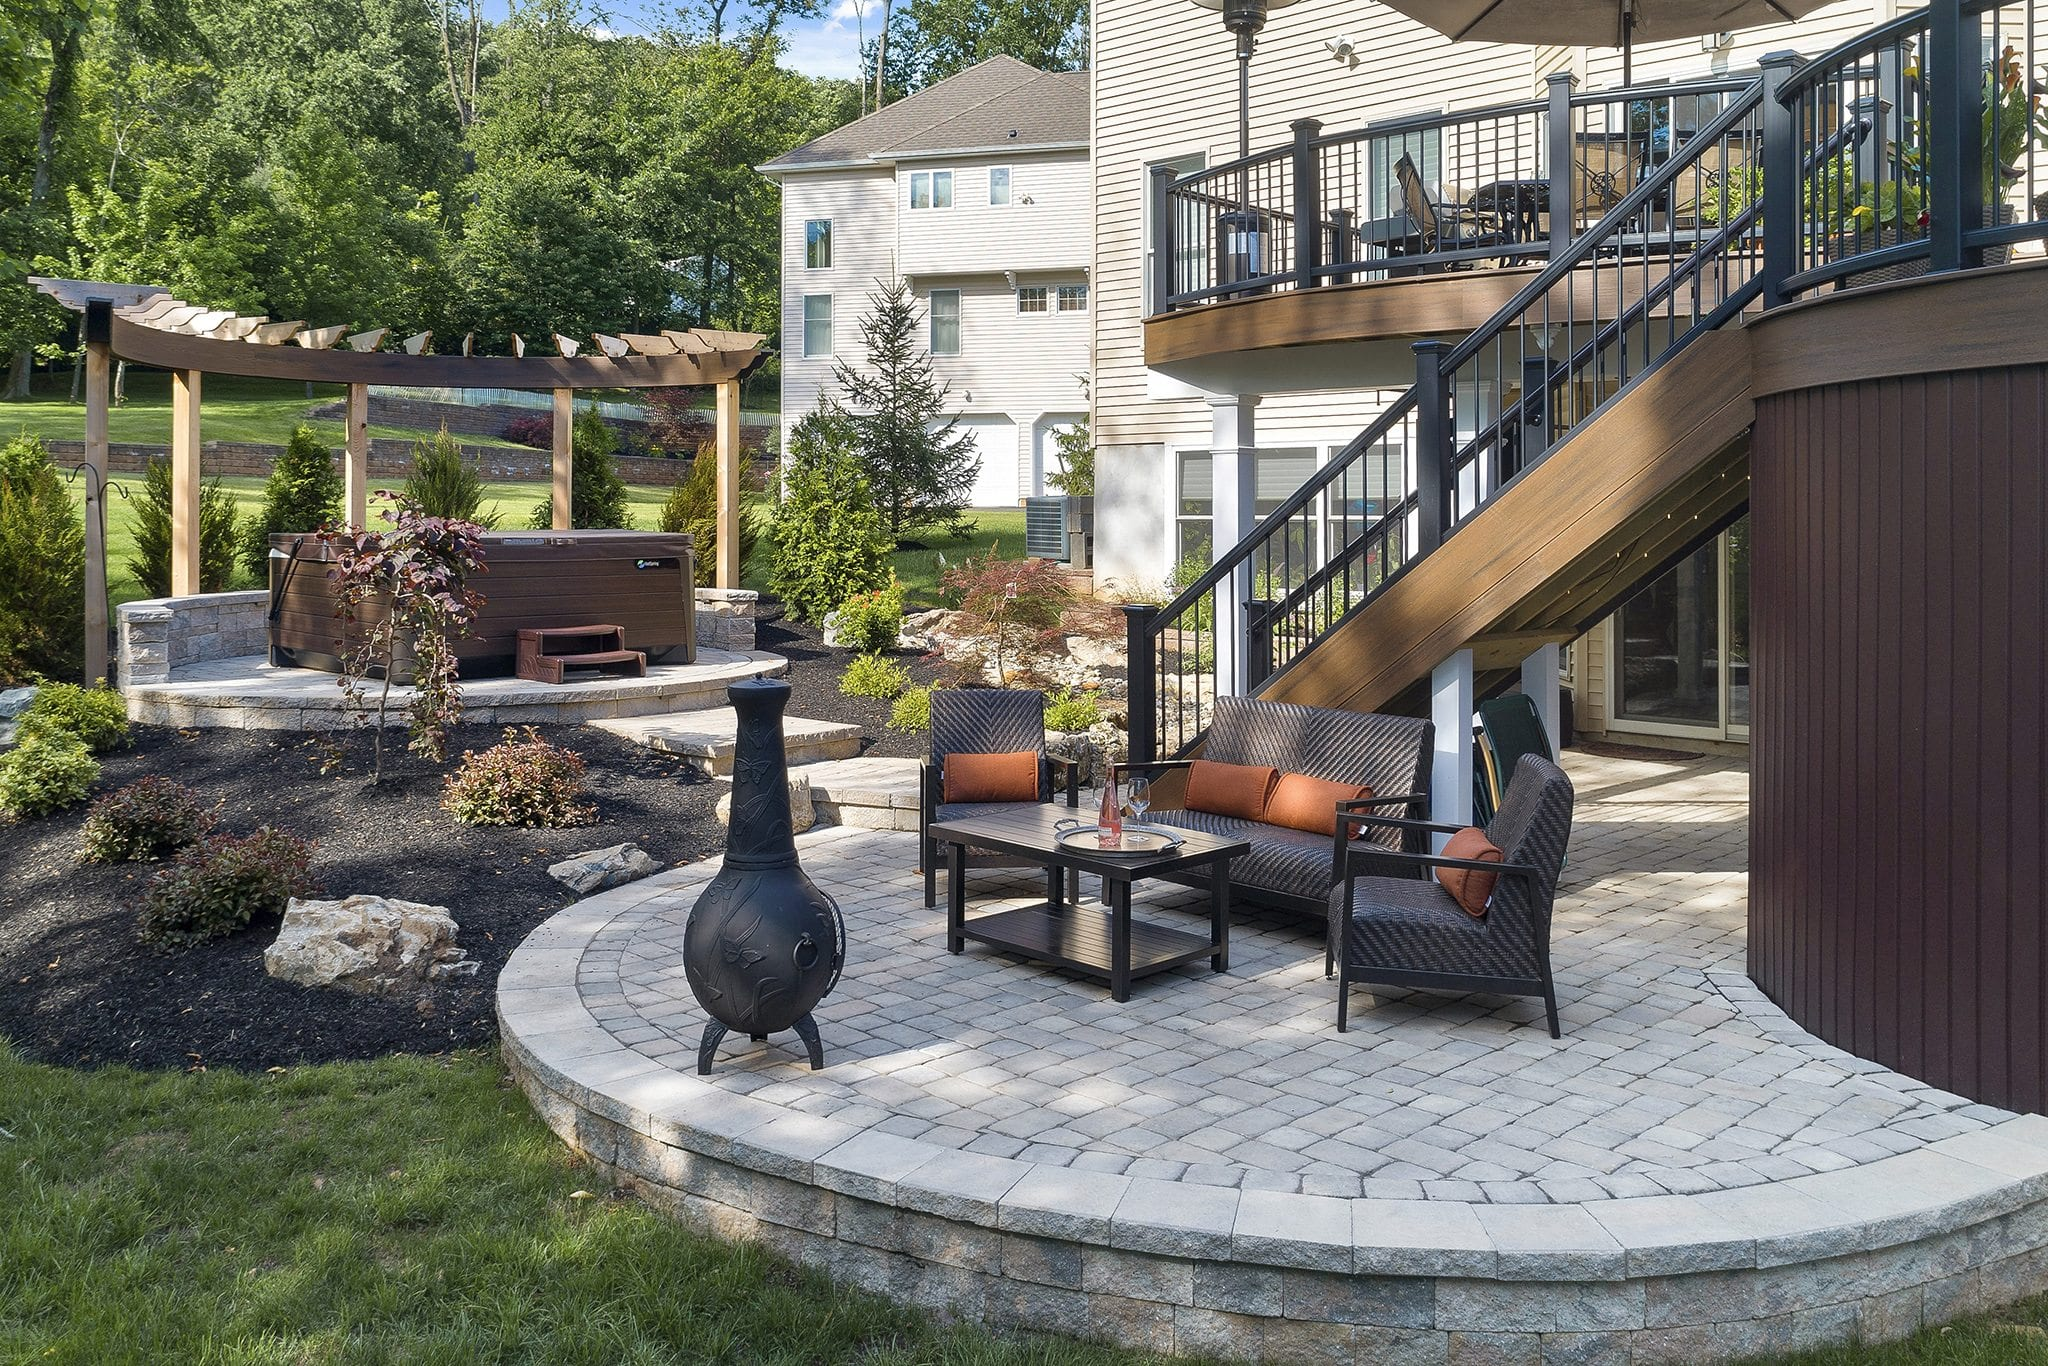 4 Raised Patio Designs That Will Make Your NJ Home Stand Out on garden rocks and stones, garden steps stones, garden building stones, garden plants, garden railroad ties, garden ponds stones, edging stones, garden drainage, garden marble stones, garden landscape design, landscaping stones, drainage stones, garden water features, turf stones, garden stepping stones, garden pest control, garden gravel stones, garden landscape stones, garden fence stones,